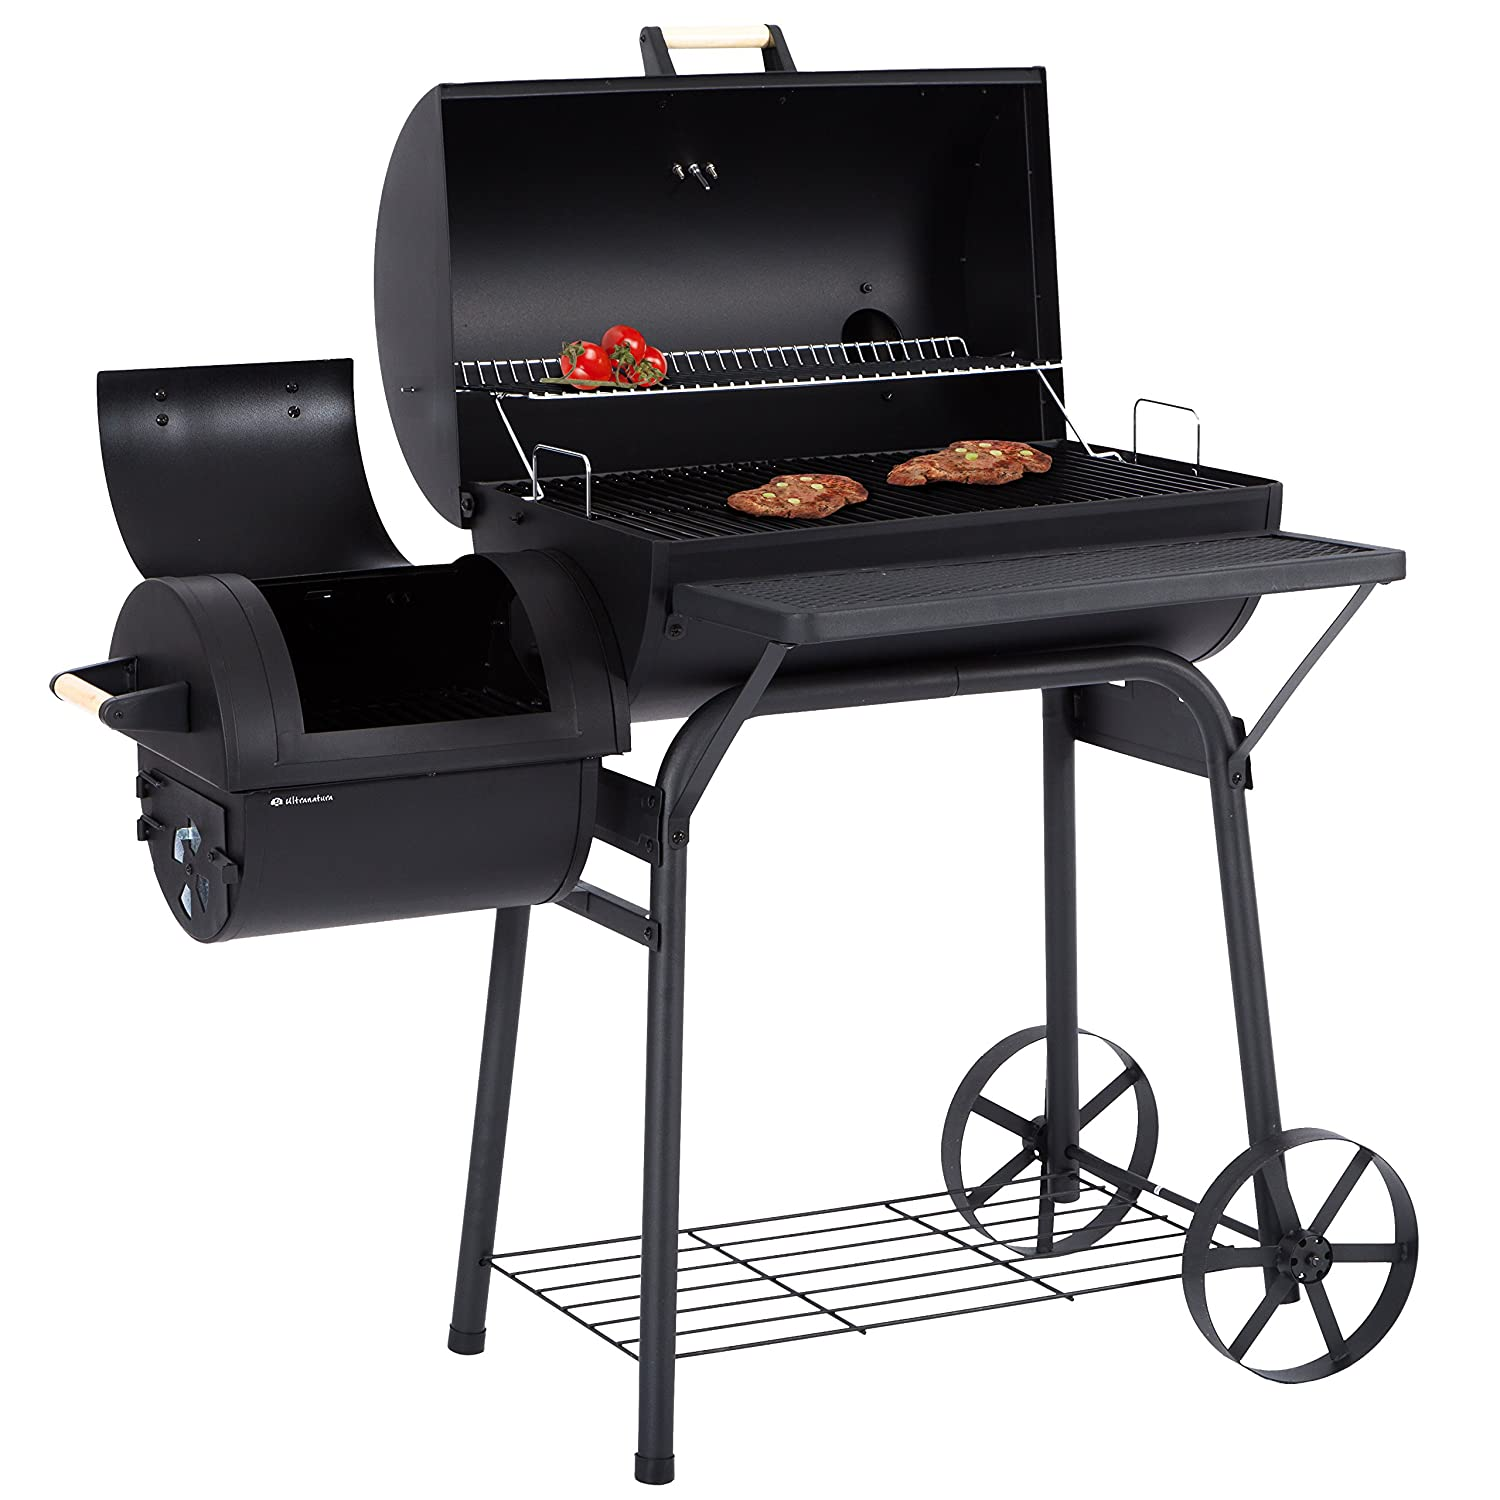 Ultranatura Smoker Grill Denver 2